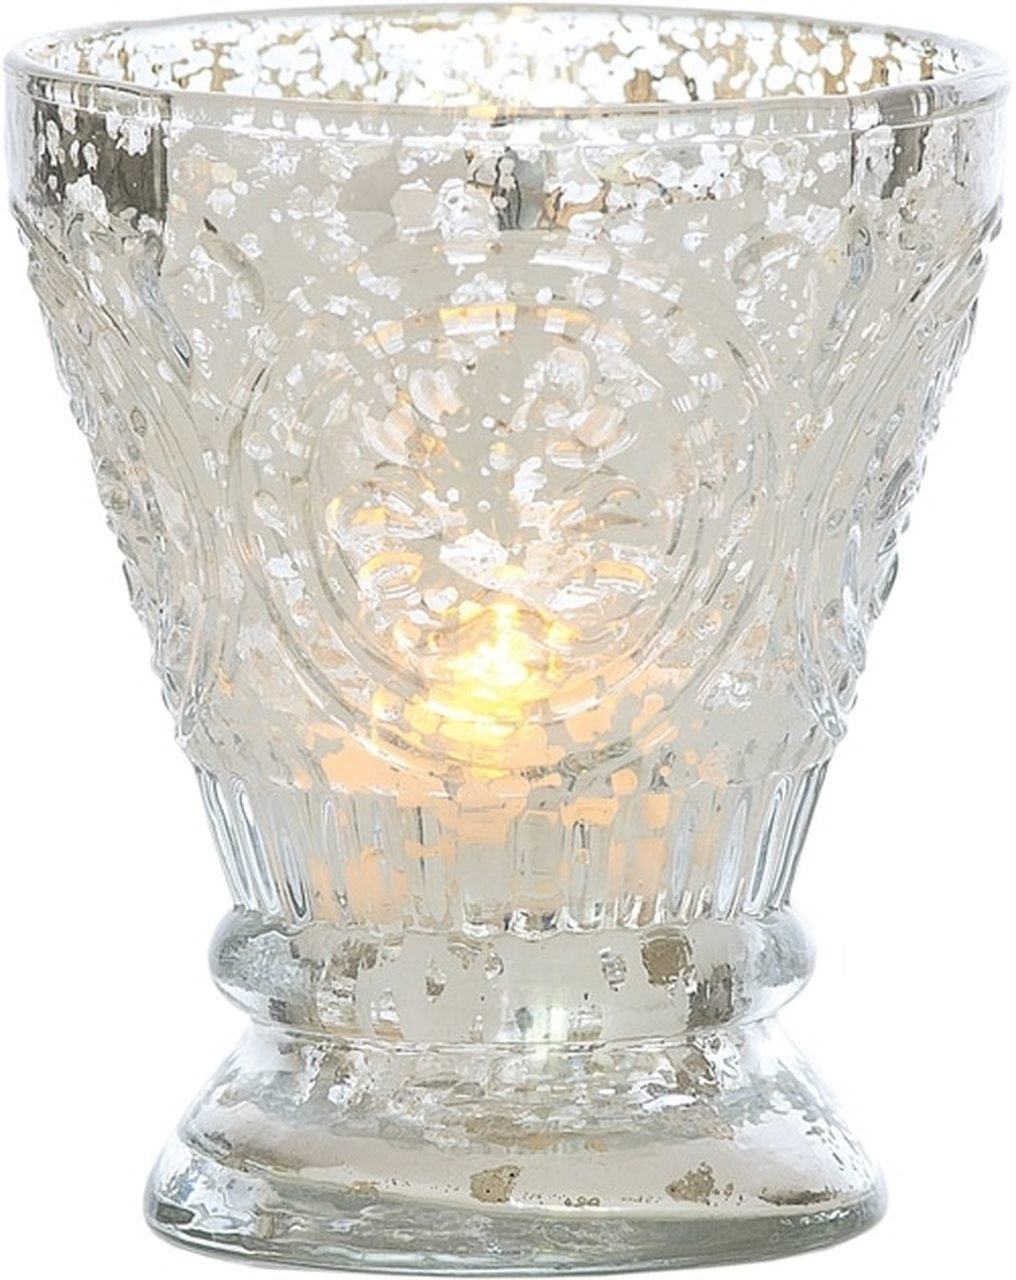 Vintage Mercury Glass Candle Holder (4-Inch, Rosemary Design, Silver) - For Use with Tea Lights - For Home Decor, Parties, and Wedding Decorations - Luna Bazaar | Boho & Vintage Style Decor